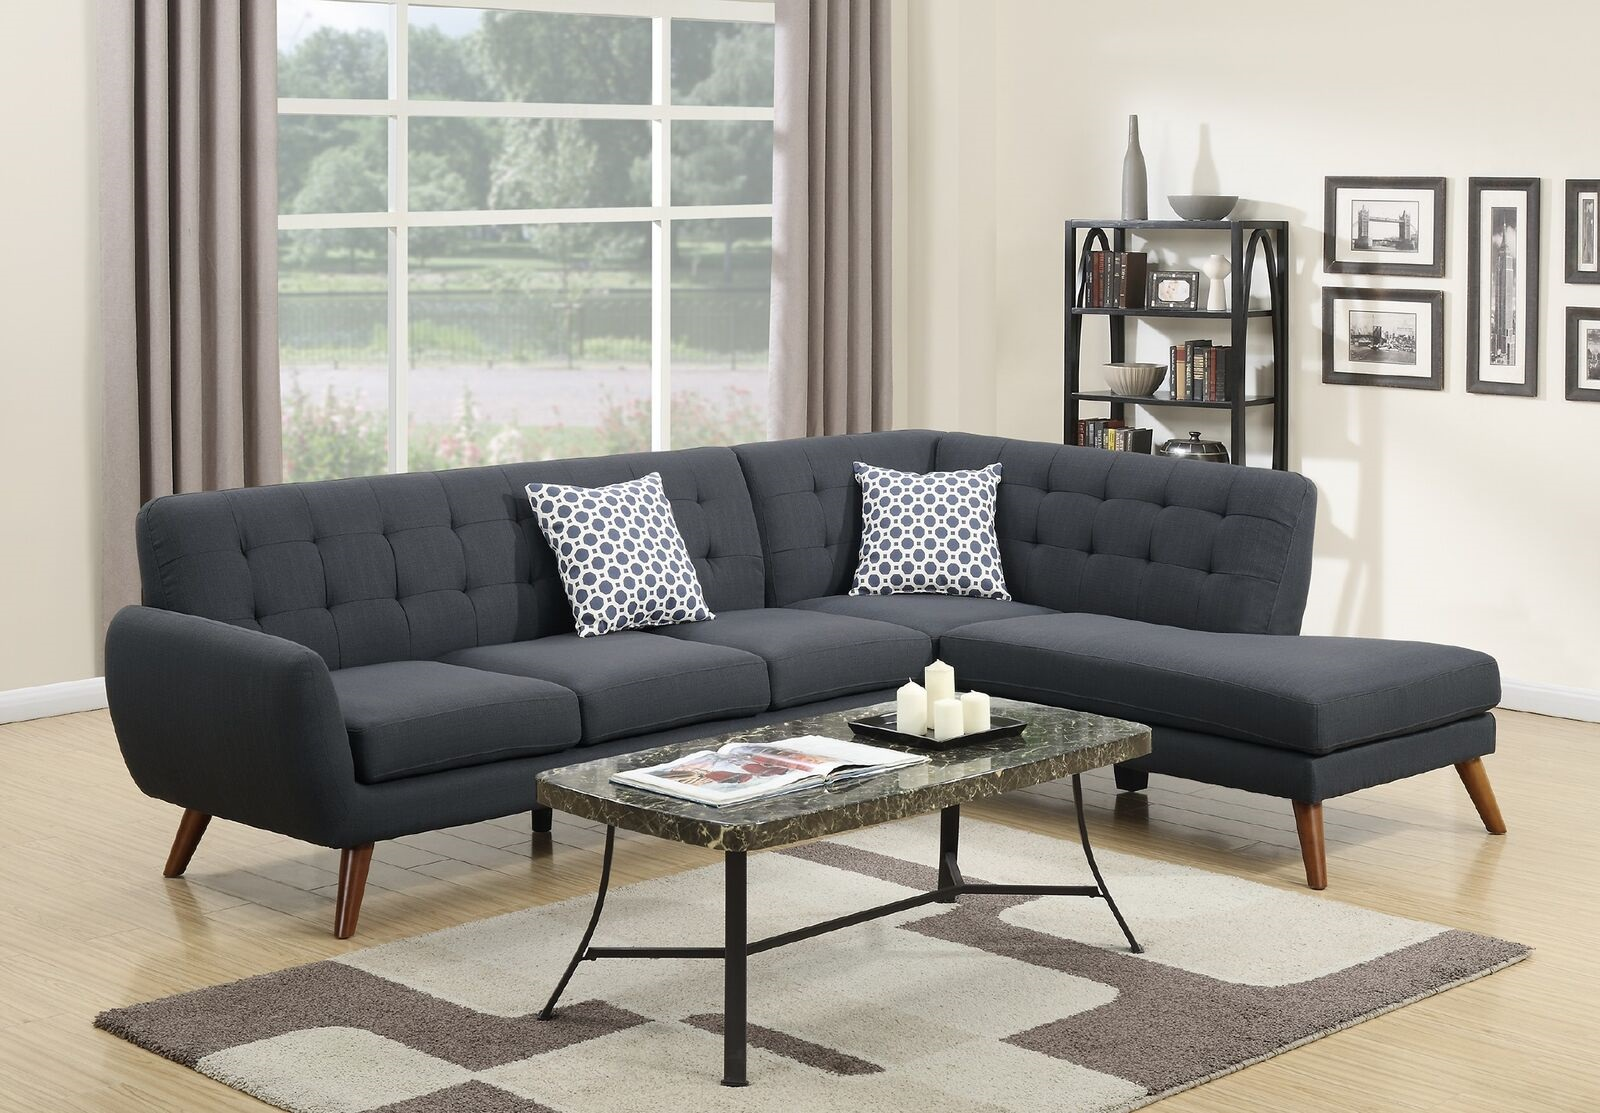 Unique Sectional Sofa Modern Tufted Couch Sofa Chaise Ash Black Linen Like Fabric Living Room Set